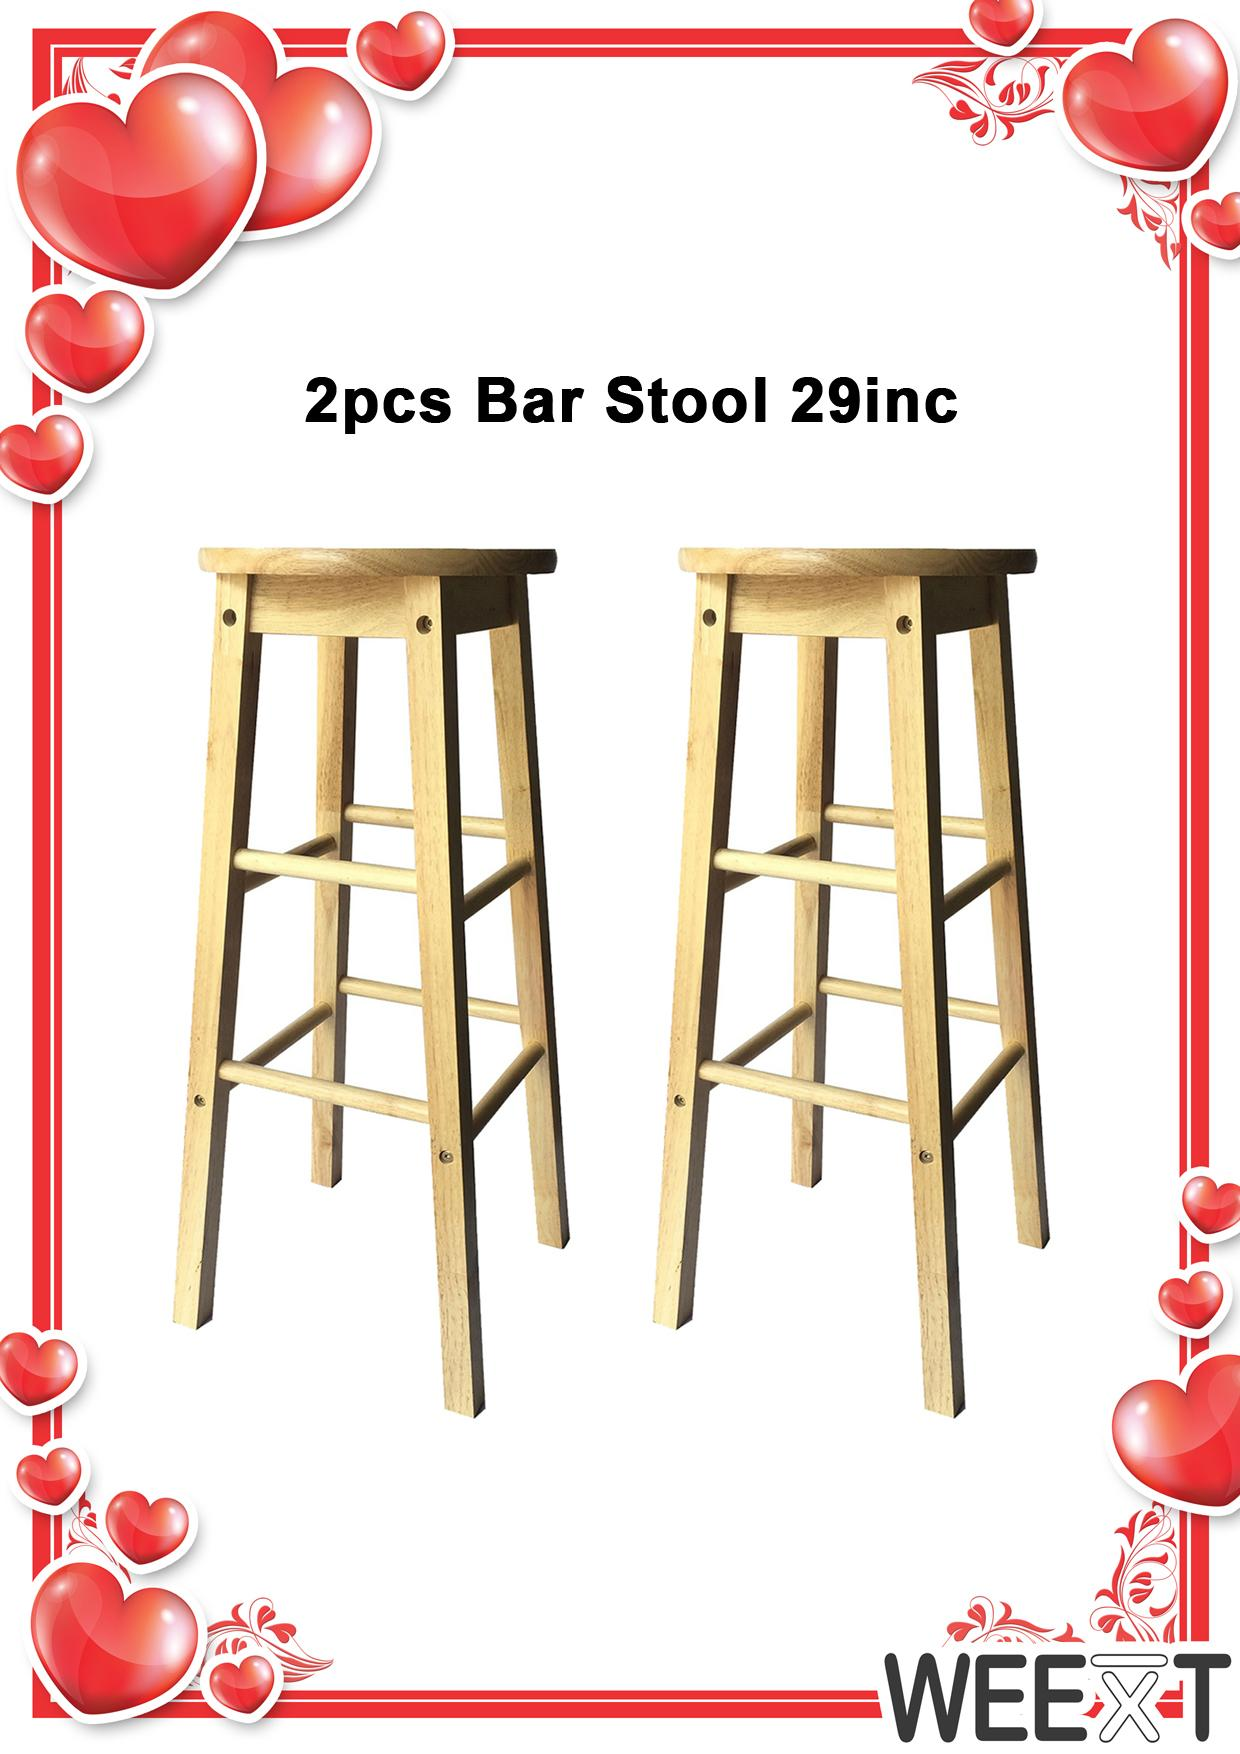 Weext 2 pcs wooden bar stool 29 inch height